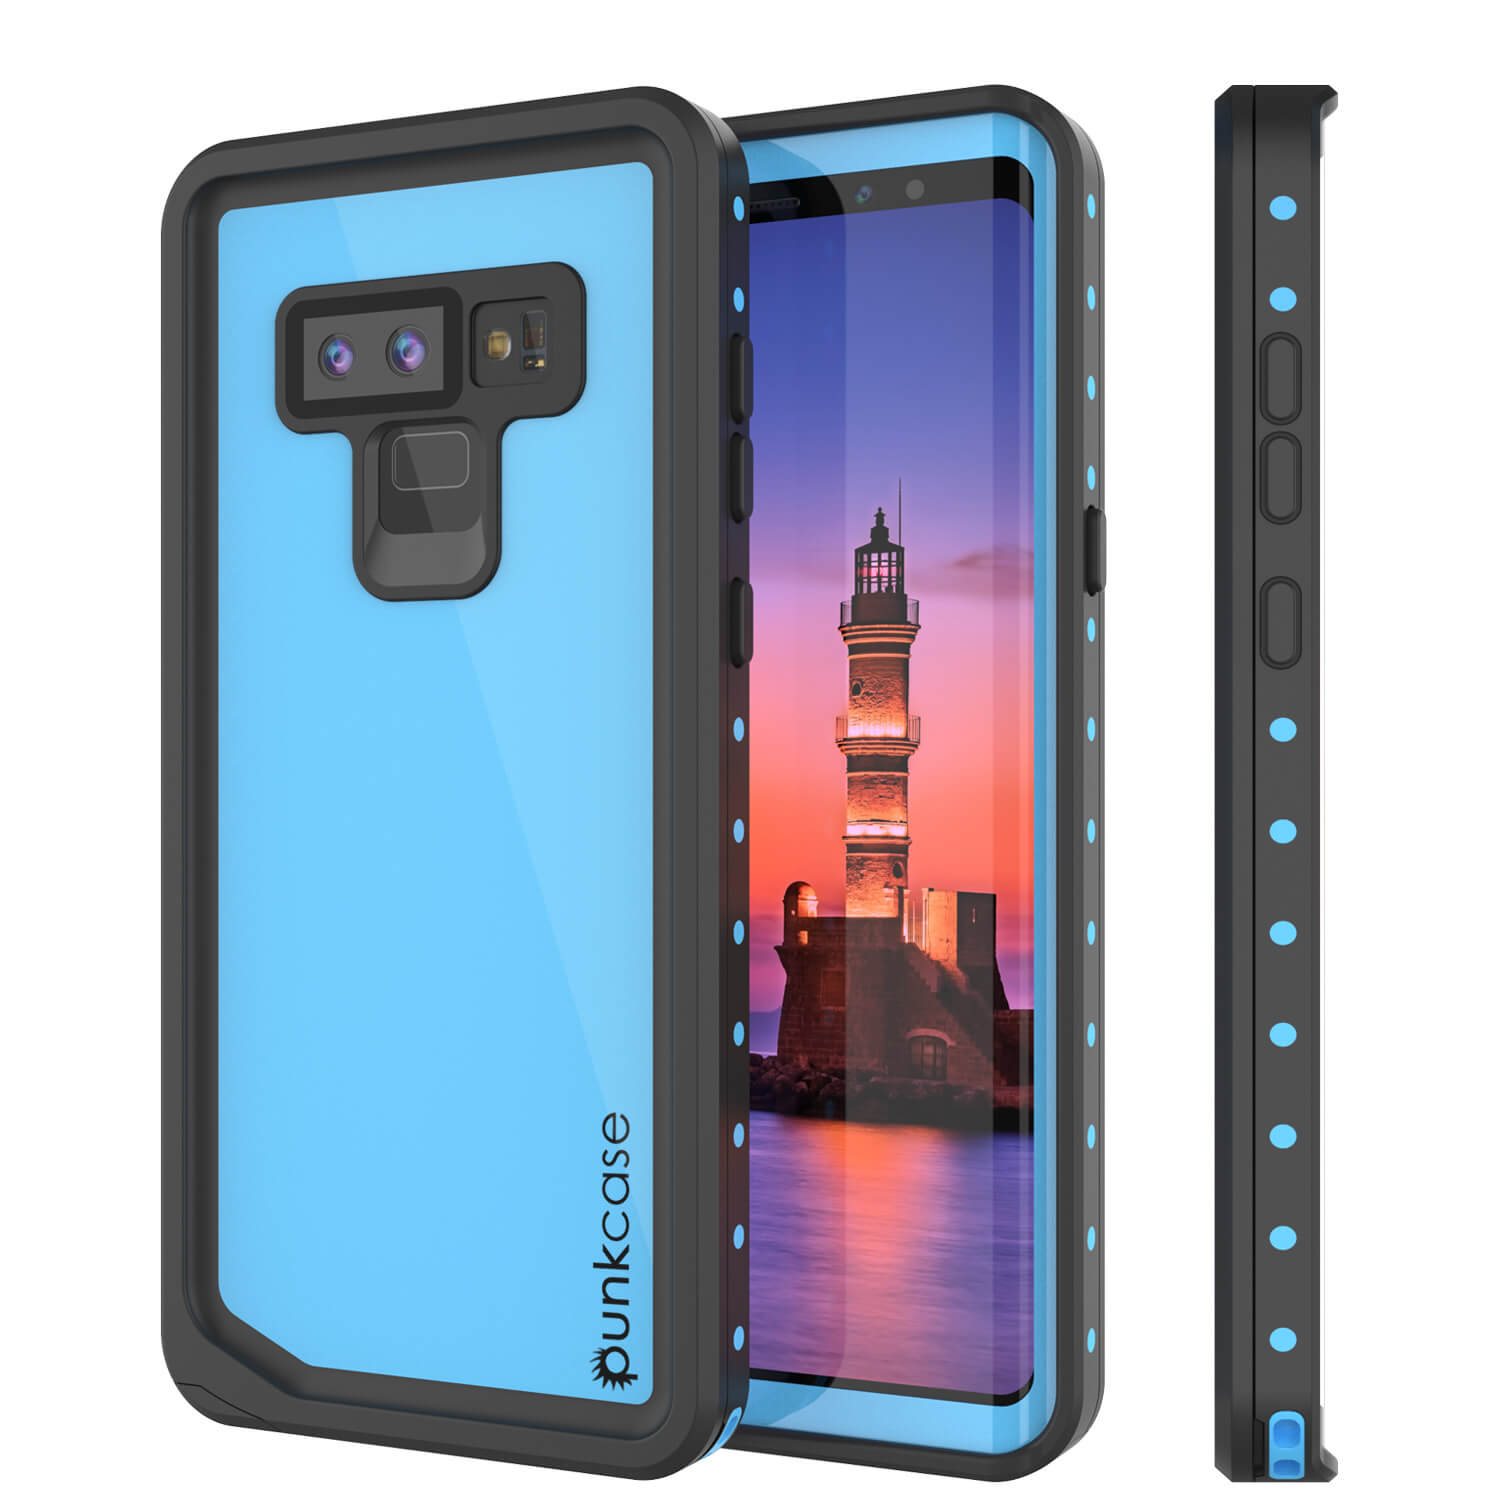 size 40 8334f 3573a Galaxy Note 9 Waterproof Case, Punkcase Studstar Light Blue Thin Armor Cover